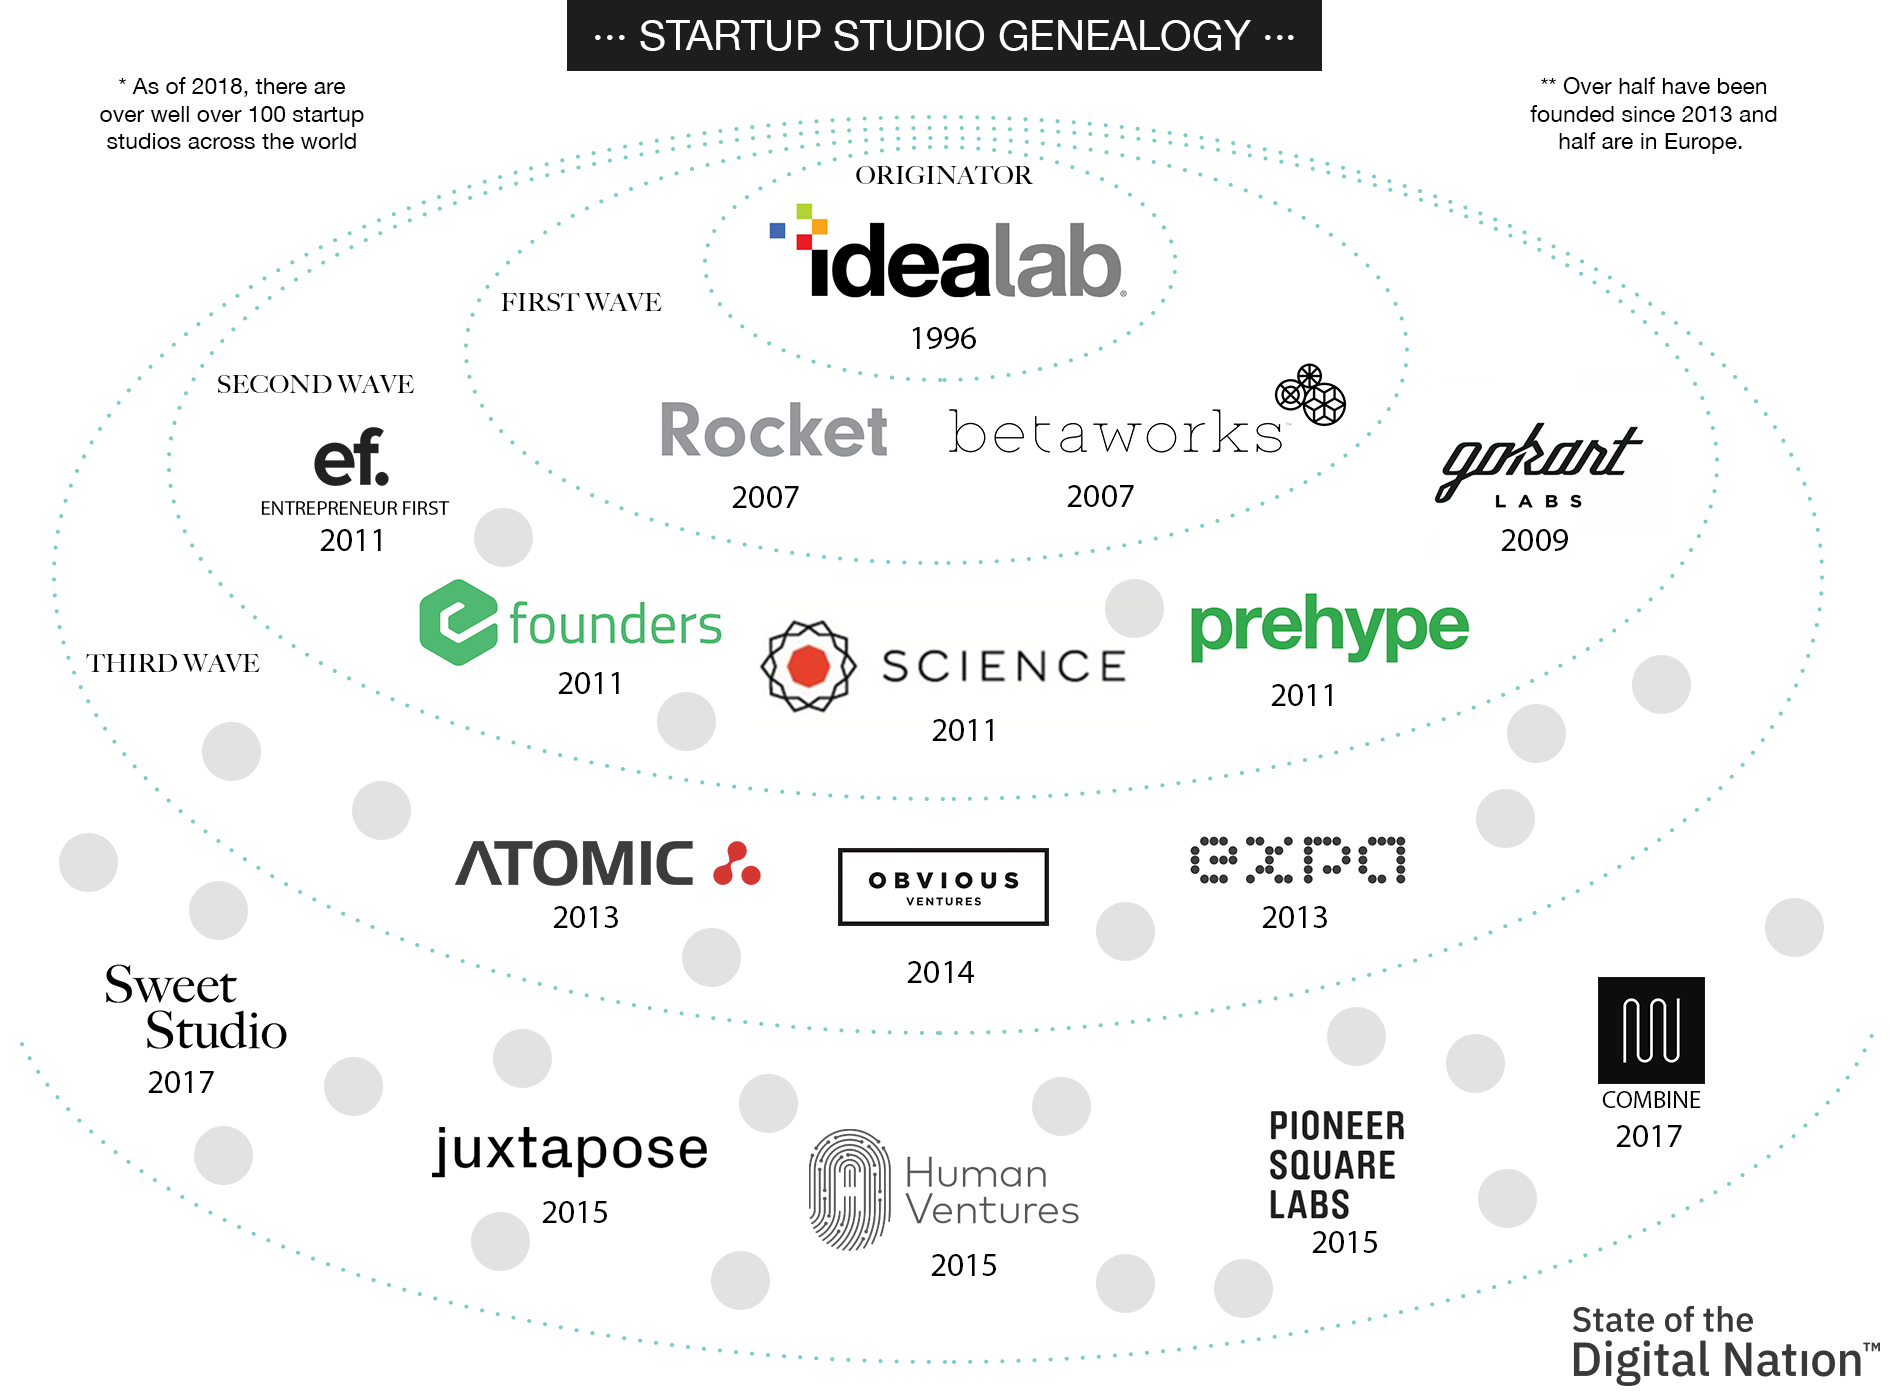 State of the Digital Nation 2020: Venture Road - The Startup